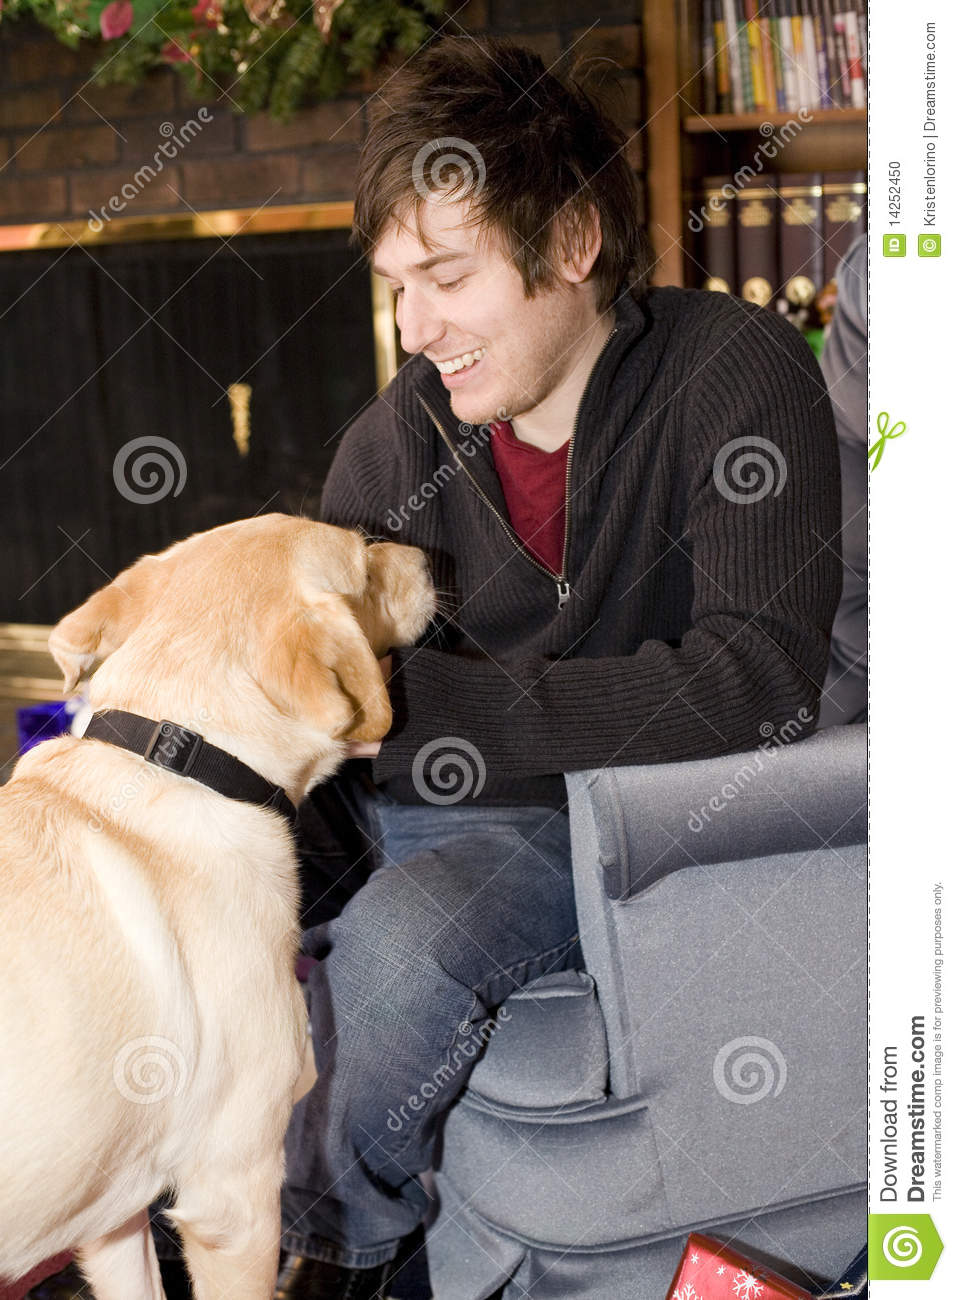 Man On Dog : Young man petting a puppy stock photography